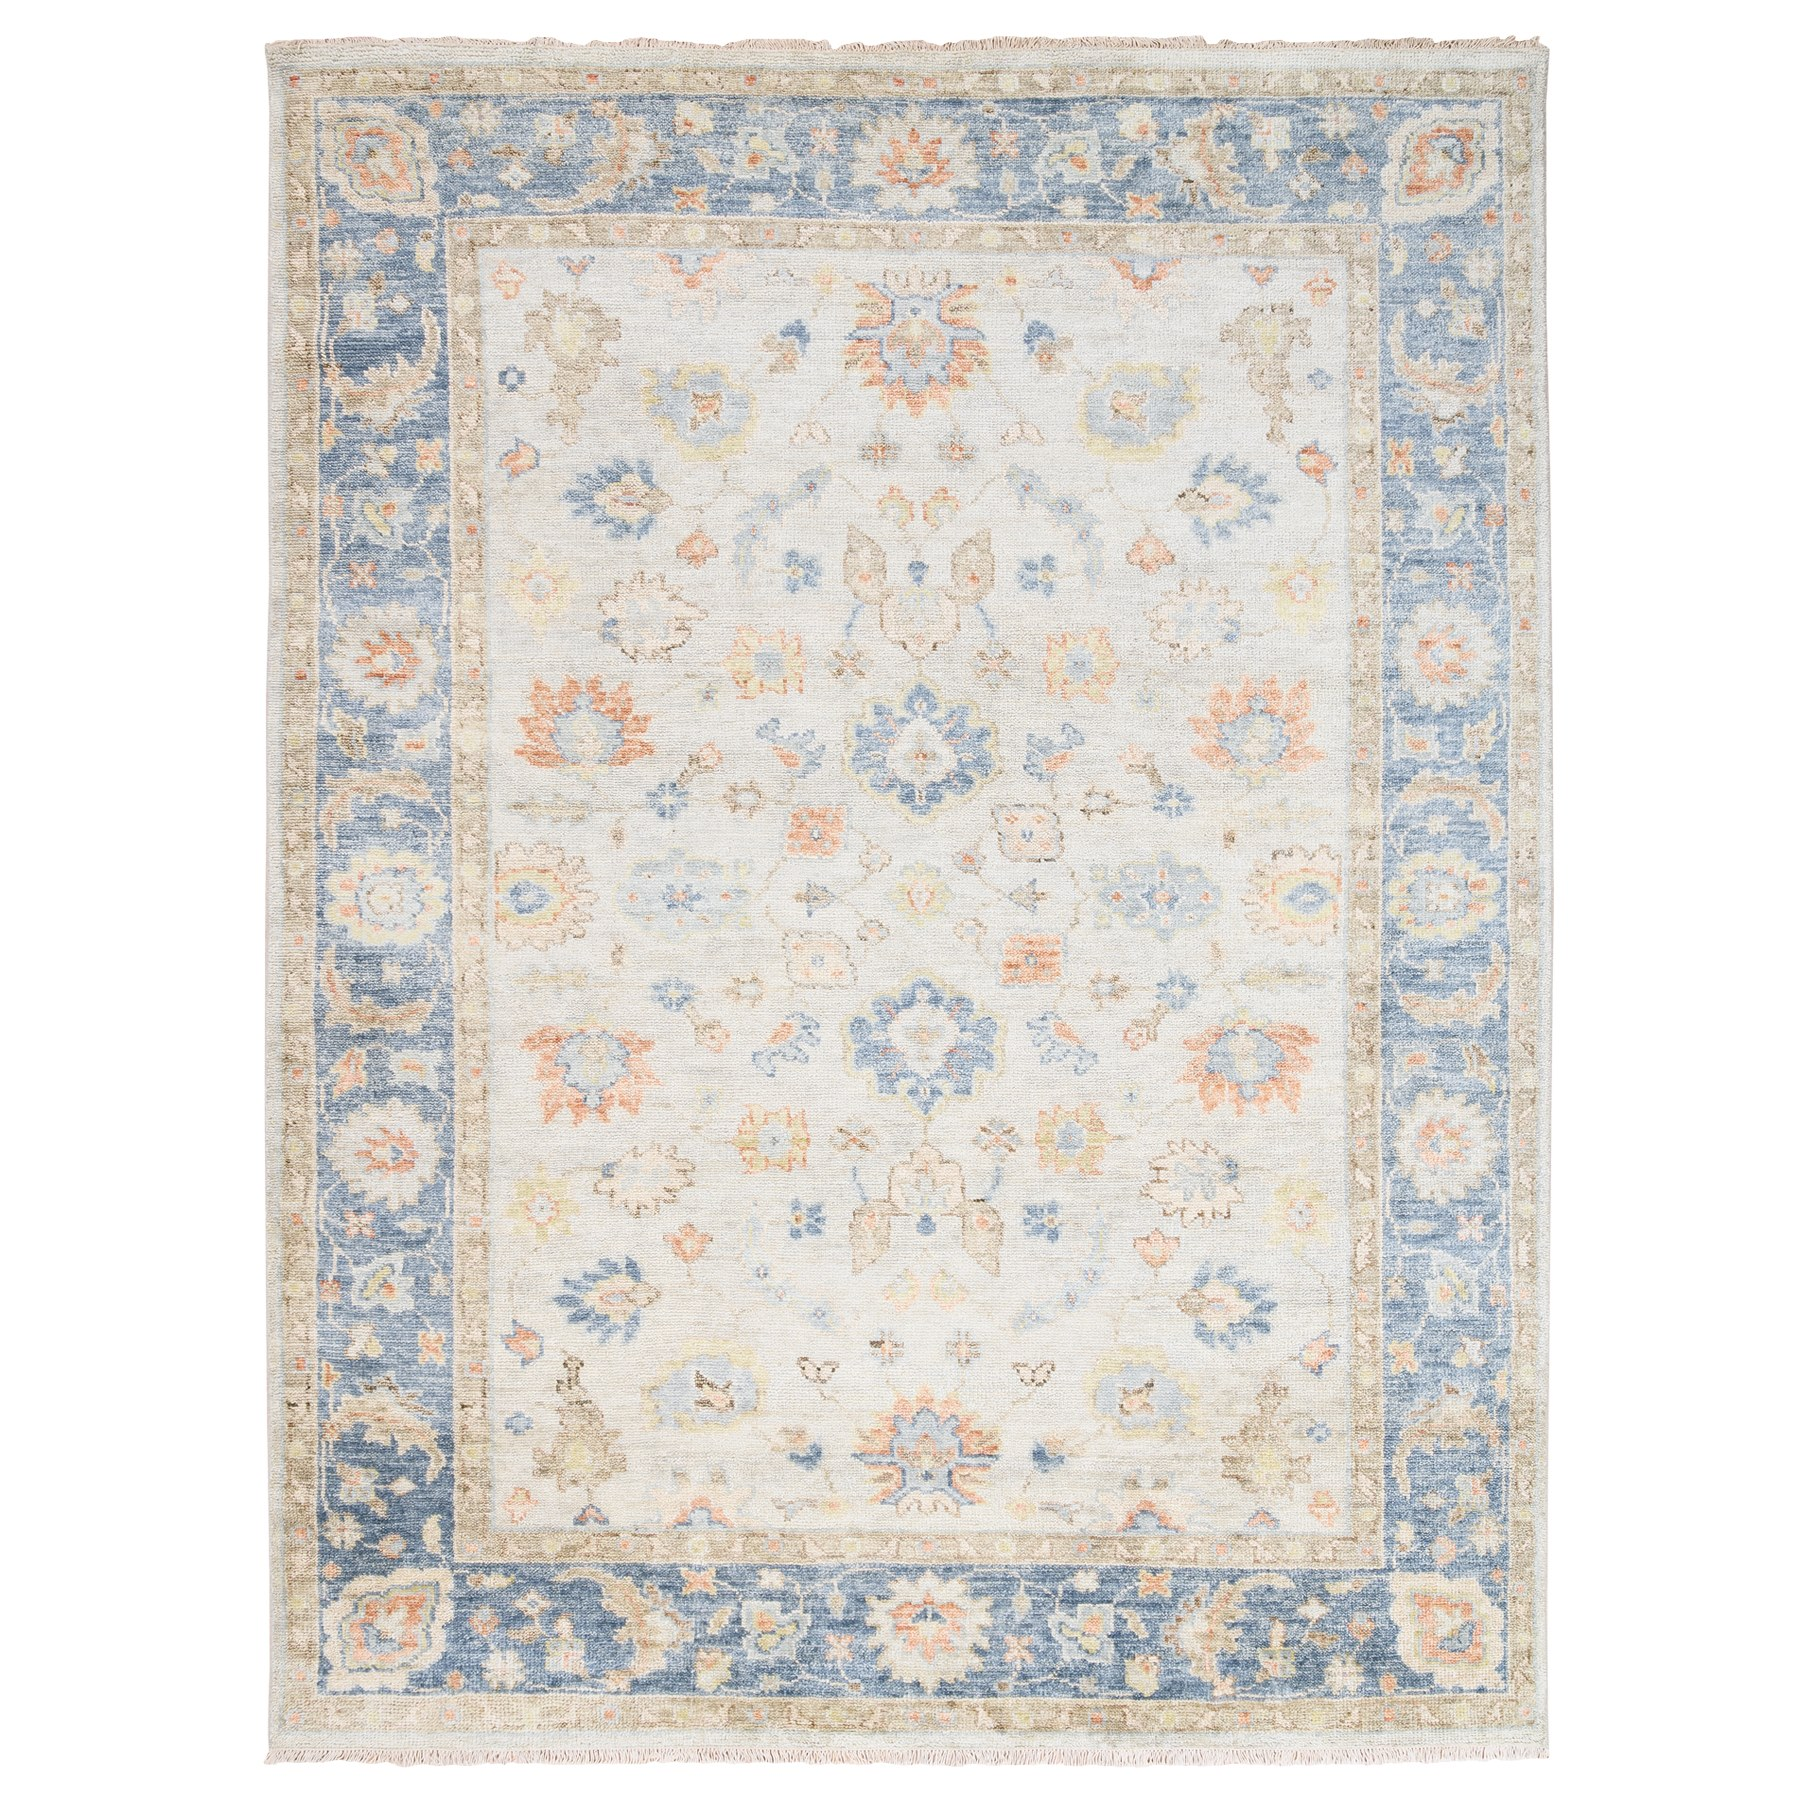 "9'x11'9"" Ivory-Blue Supple Collection Oushak Design Organic Wool Hand Knotted Oriental Rug"